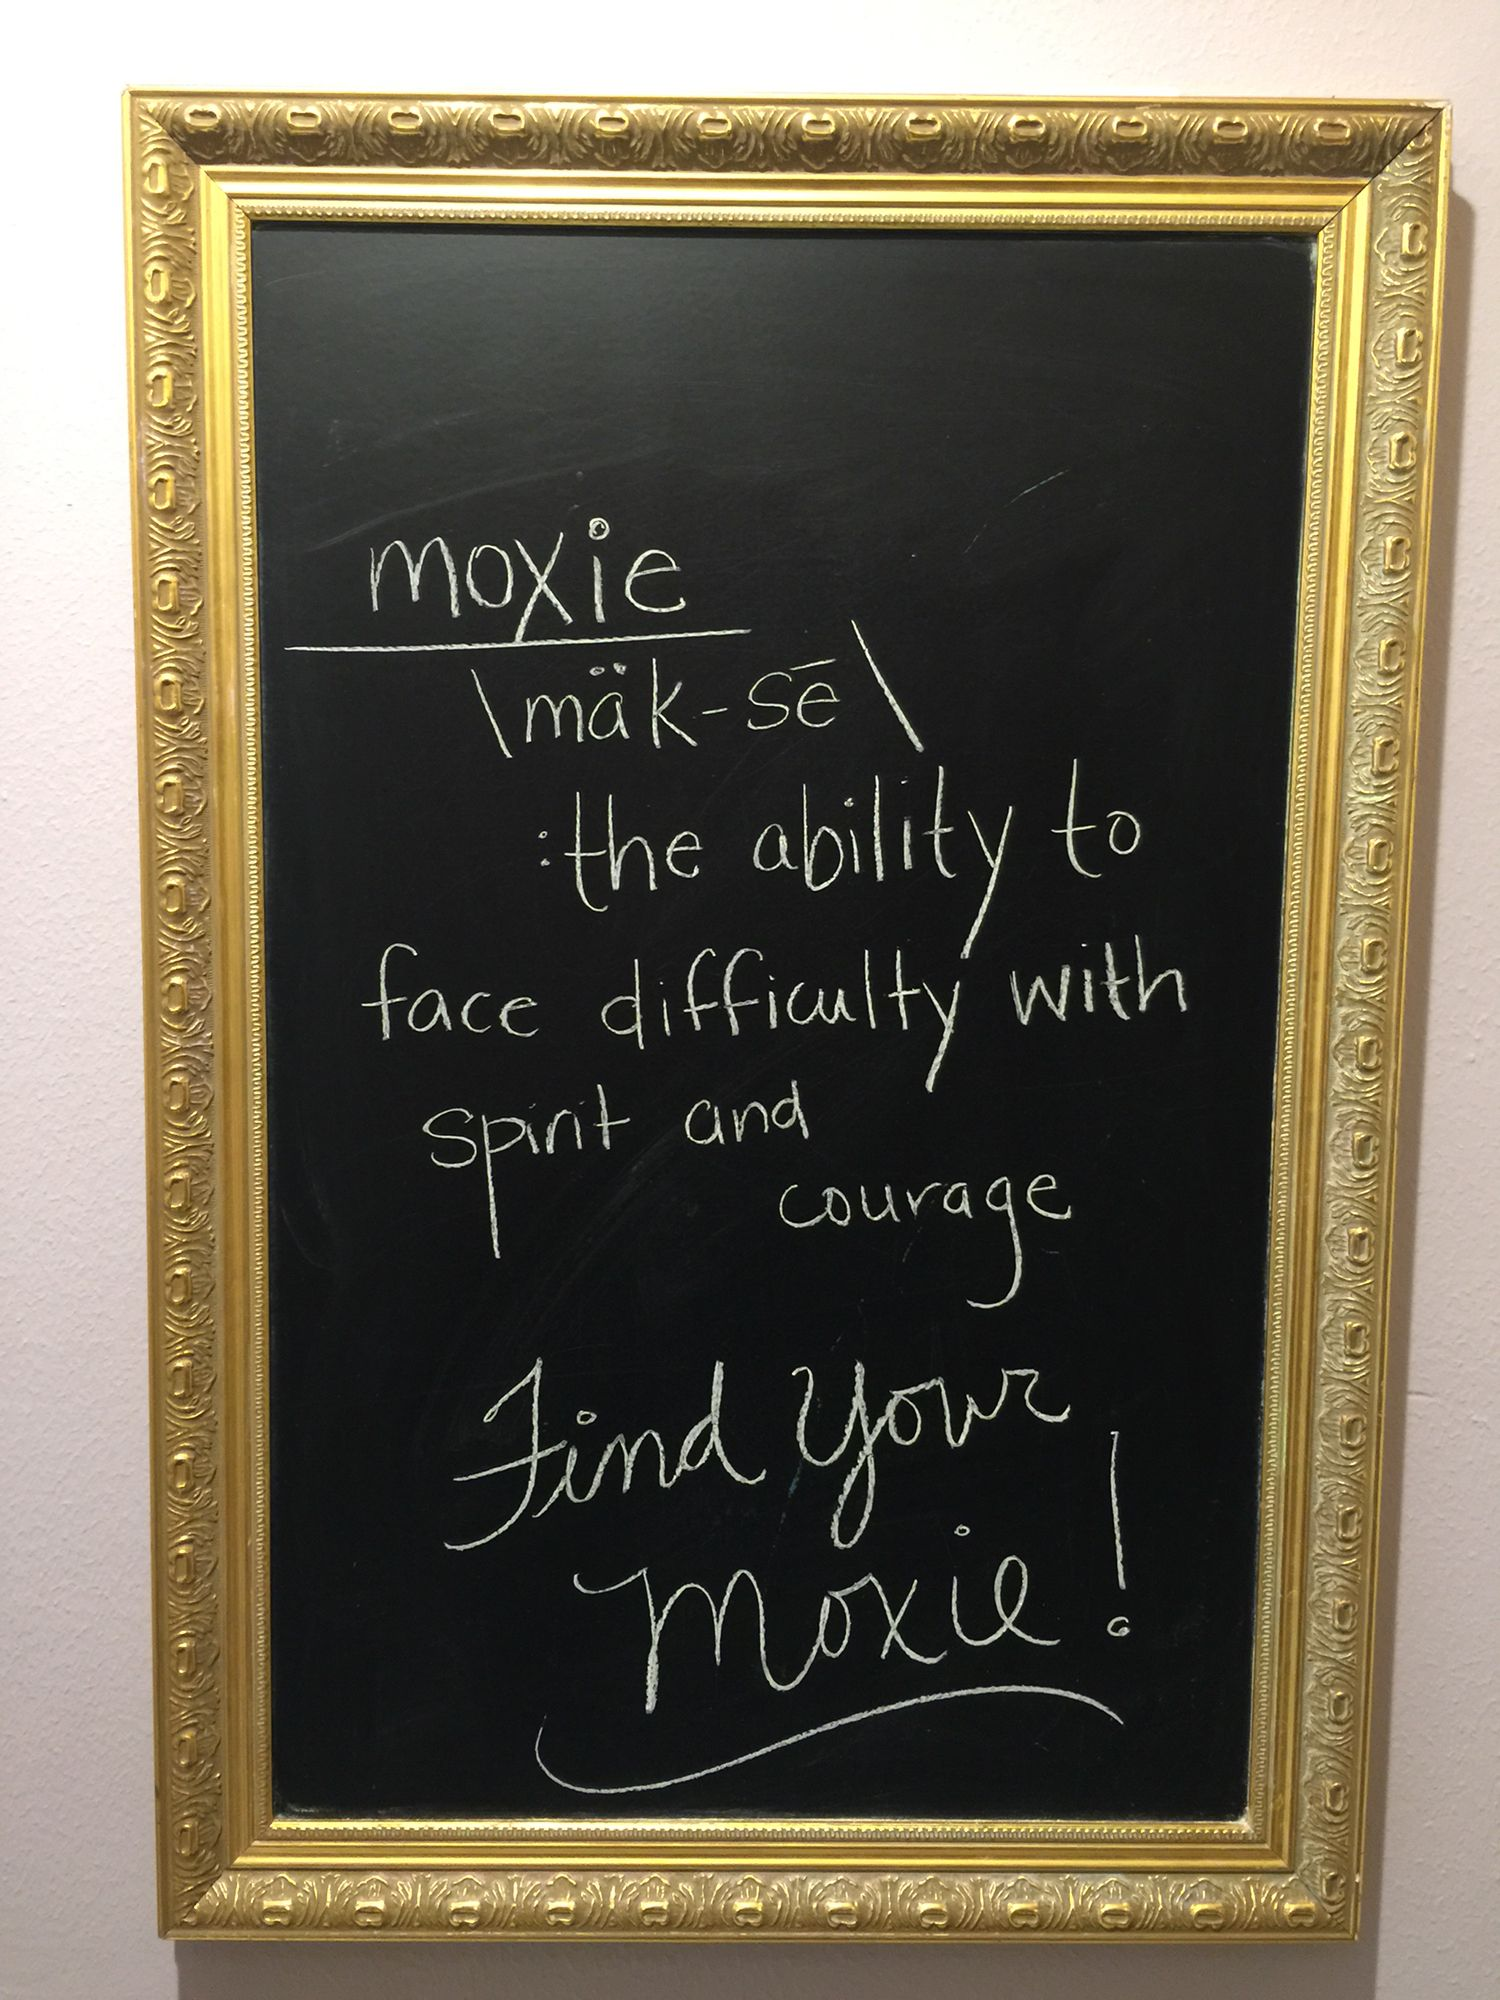 Find your Moxie!!